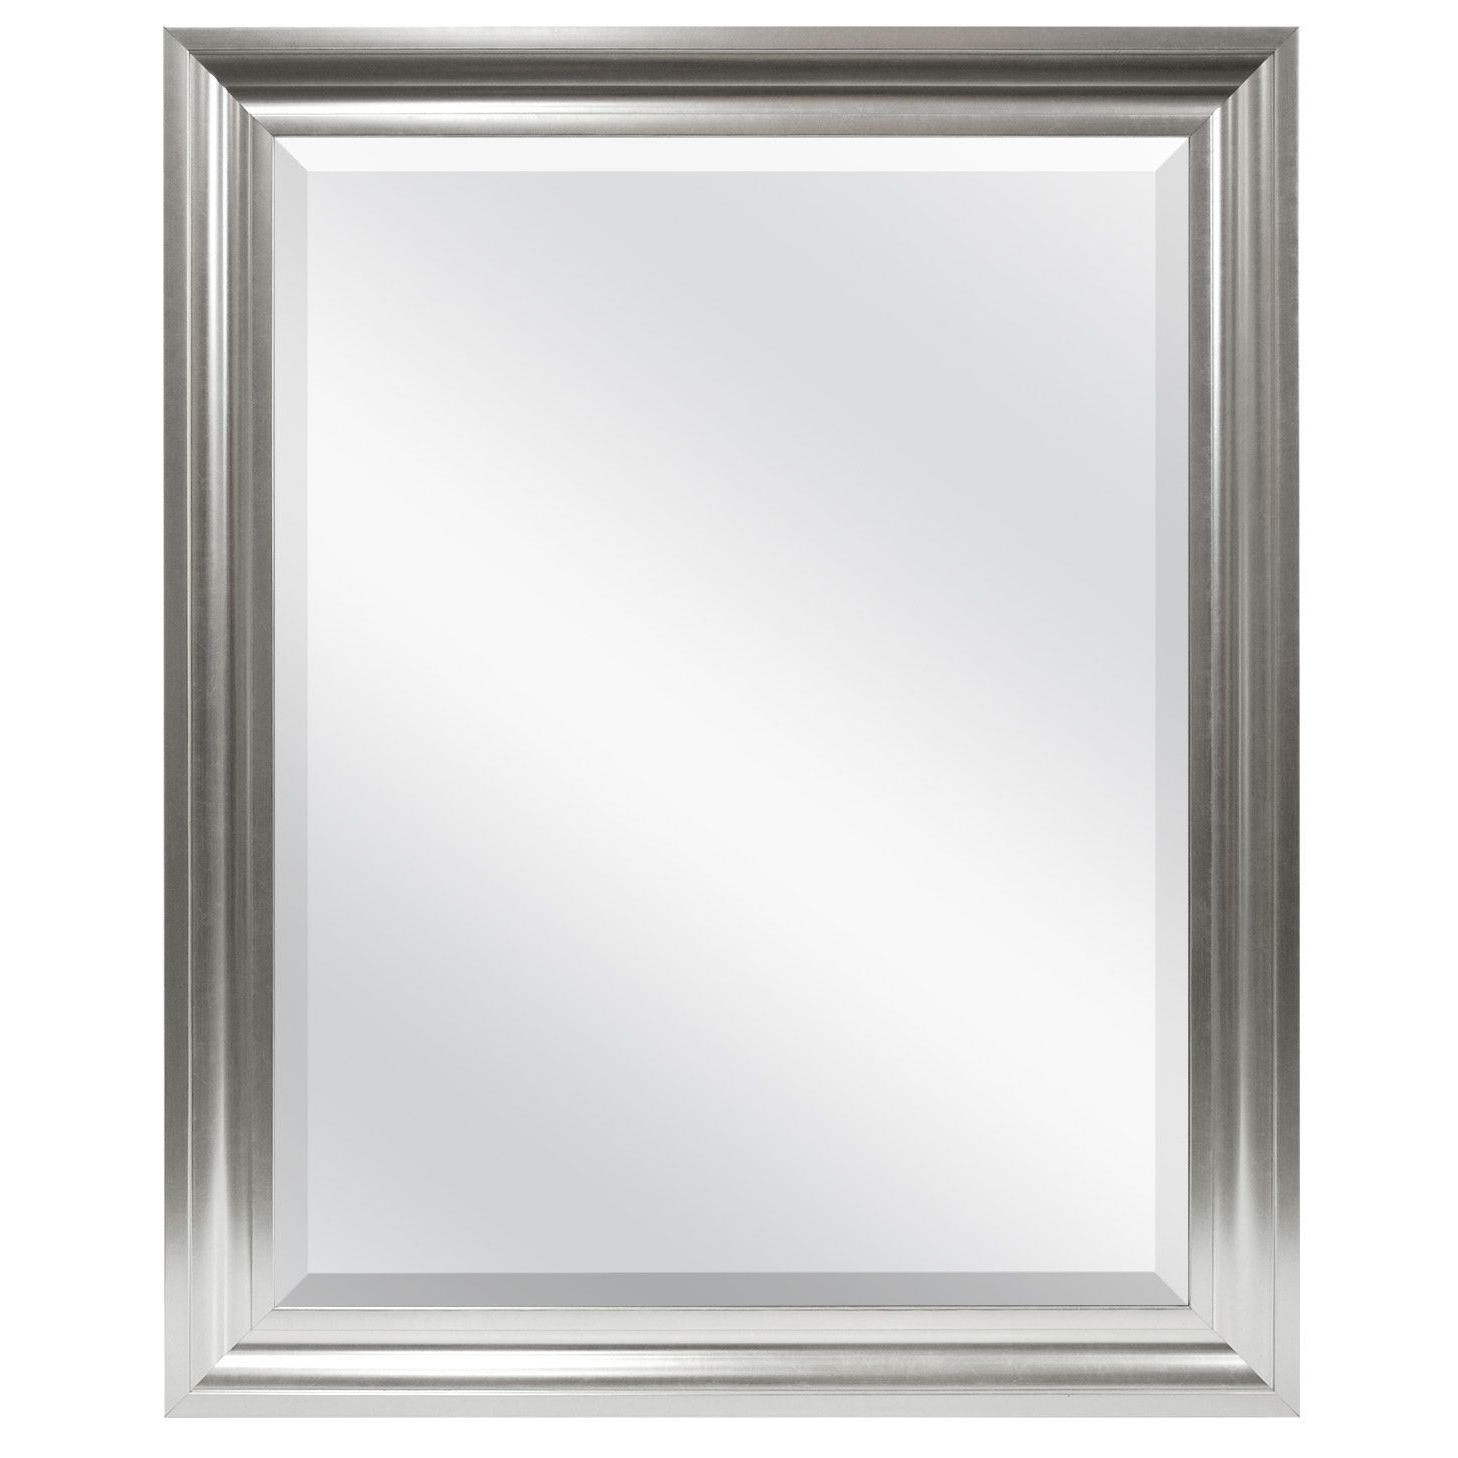 Rectangle Plastic Beveled Wall Mirrors Regarding Current Rectangle Plastic Beveled Wall Mirror (View 2 of 20)